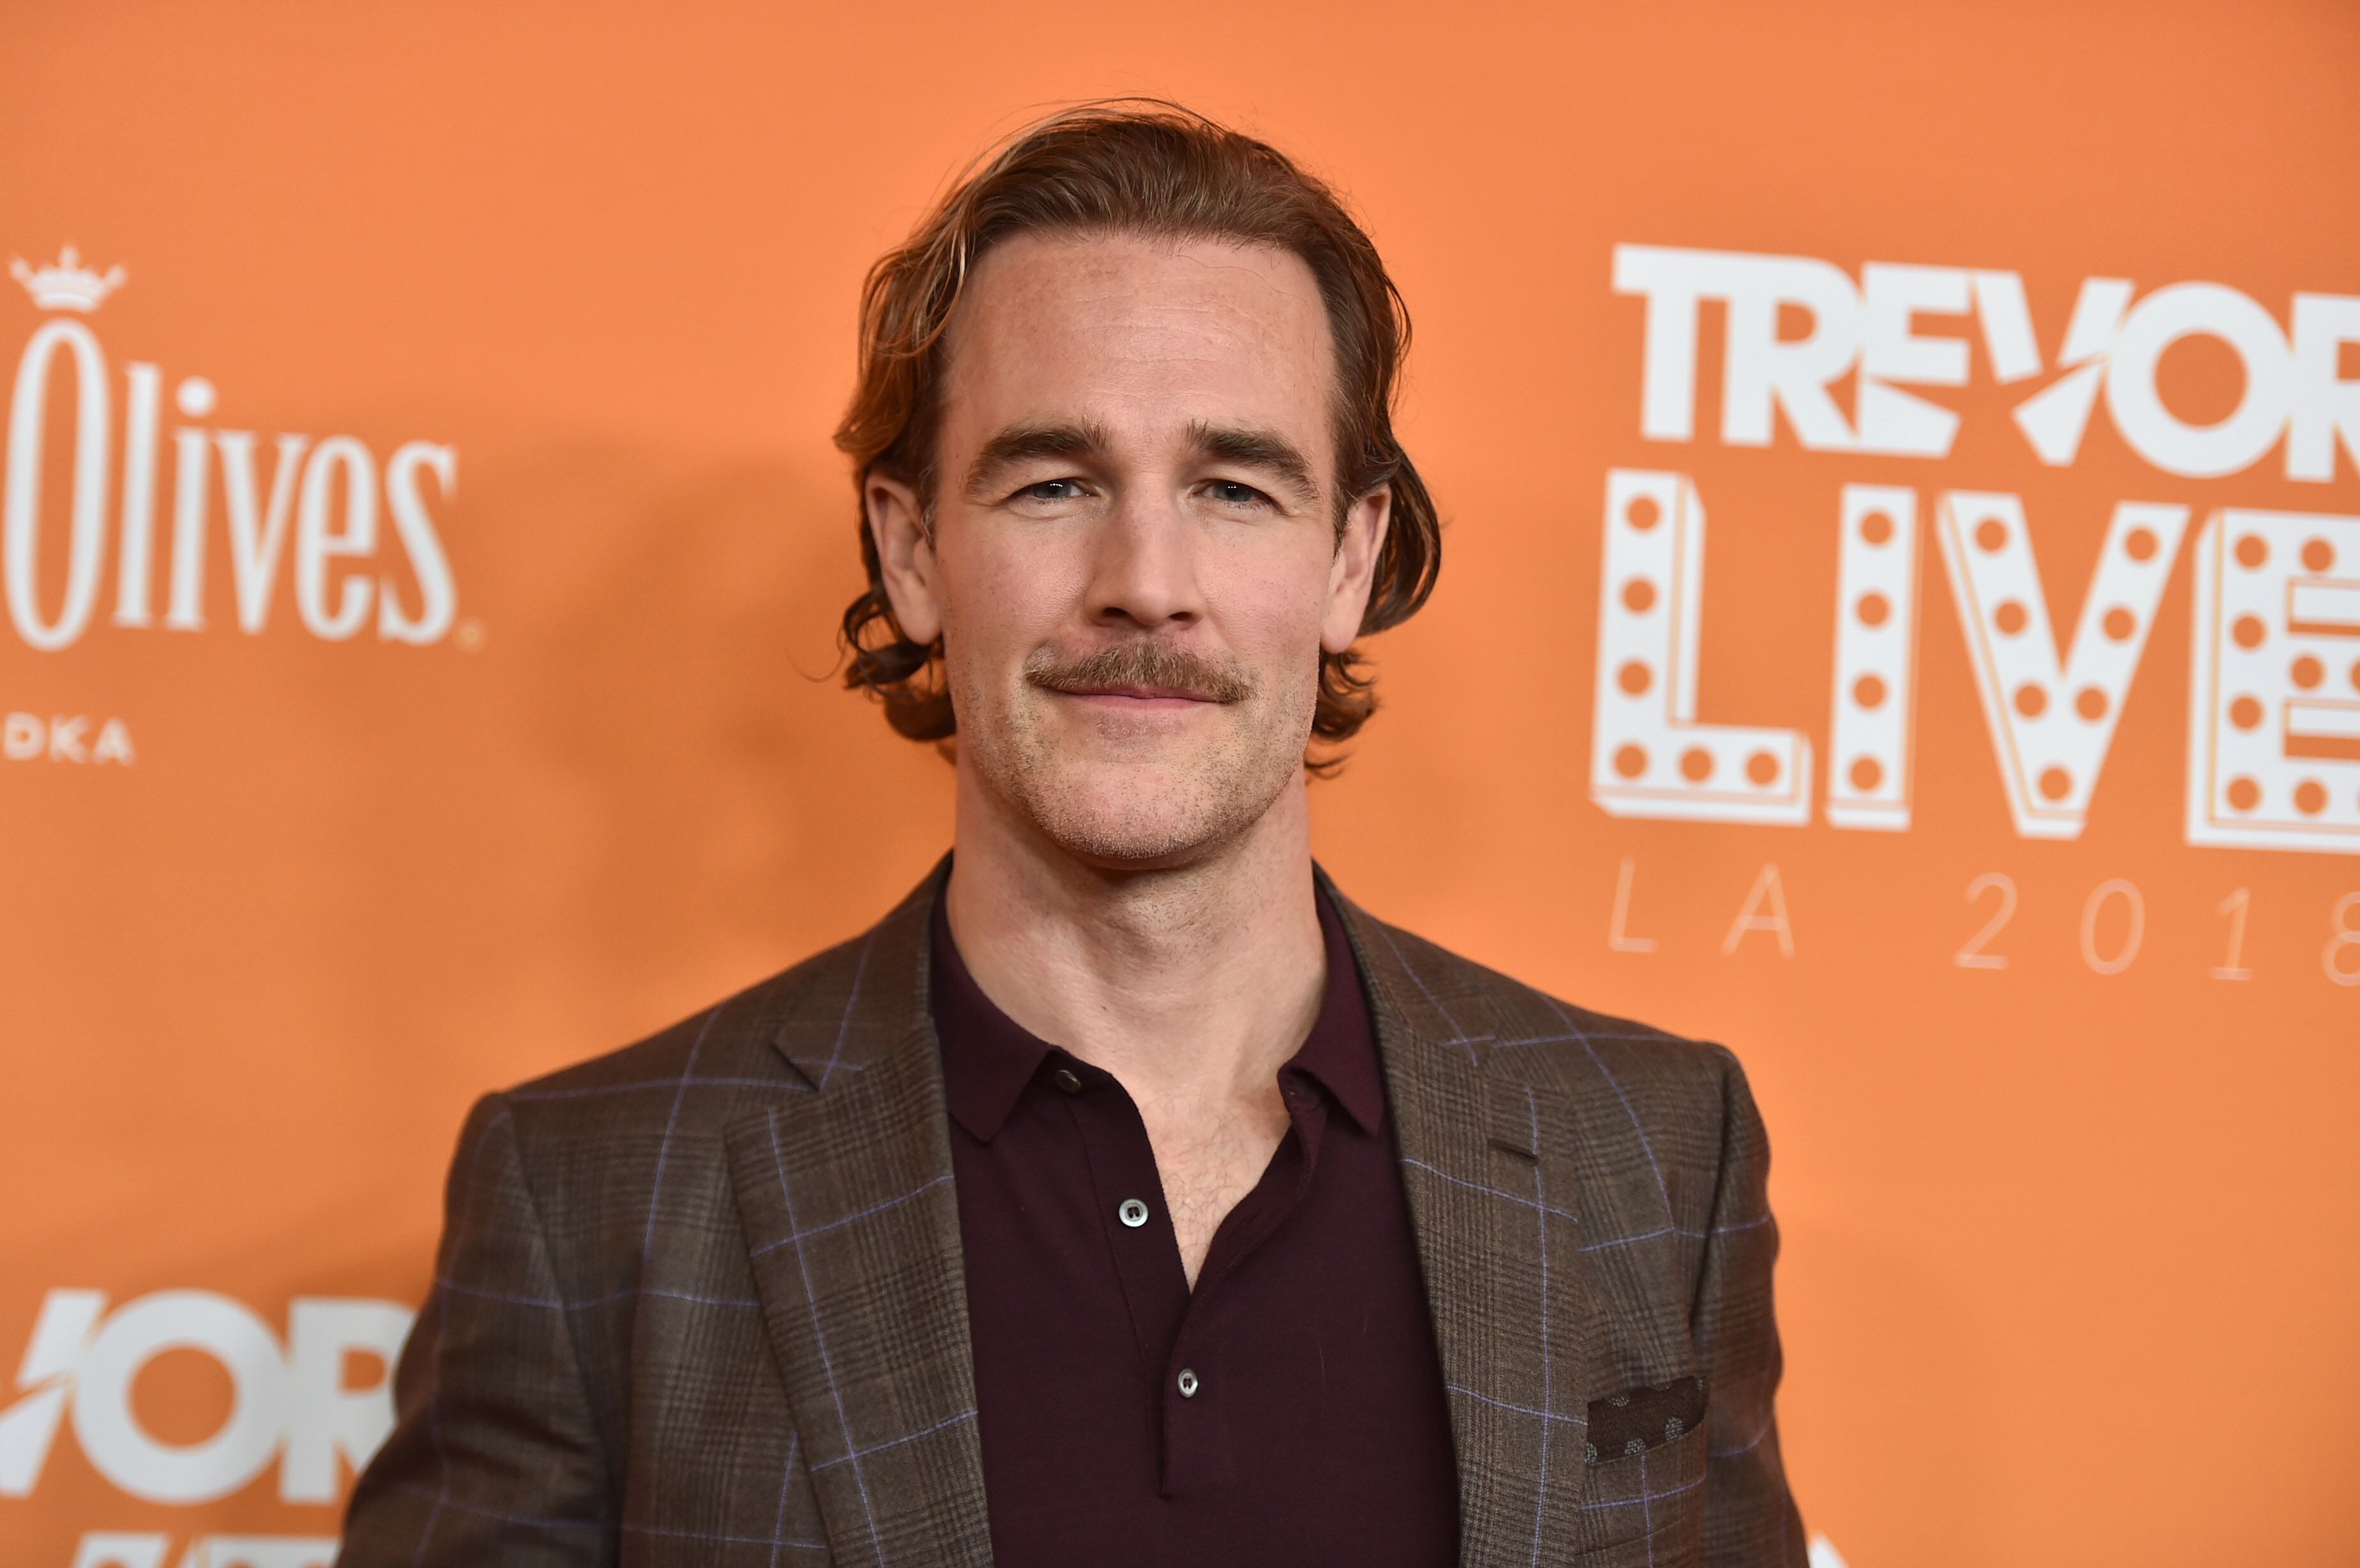 James Van Der Beek attemds The Trevor Project's TrevorLIVE Gala at The Beverly Hilton Hotel on December 02, 2018 in Beverly Hills, California | Photo: Getty Images